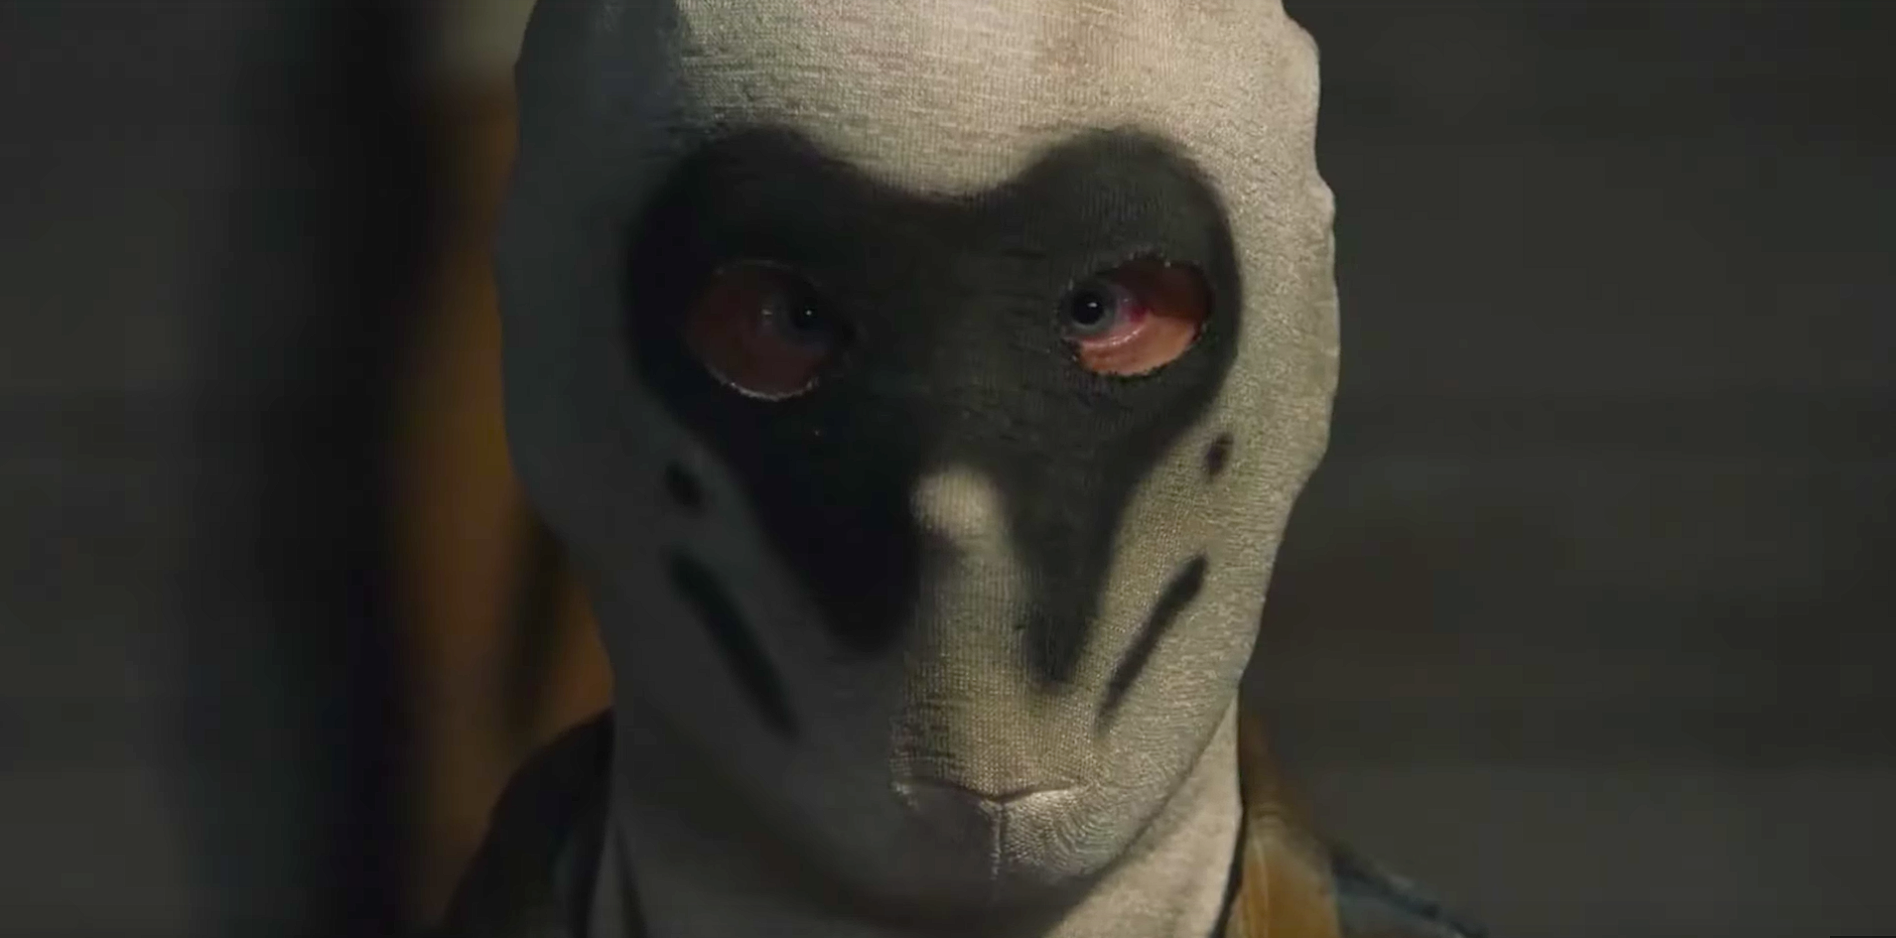 The First Trailer for HBO's Watchmen Looks Absolutely Incredible